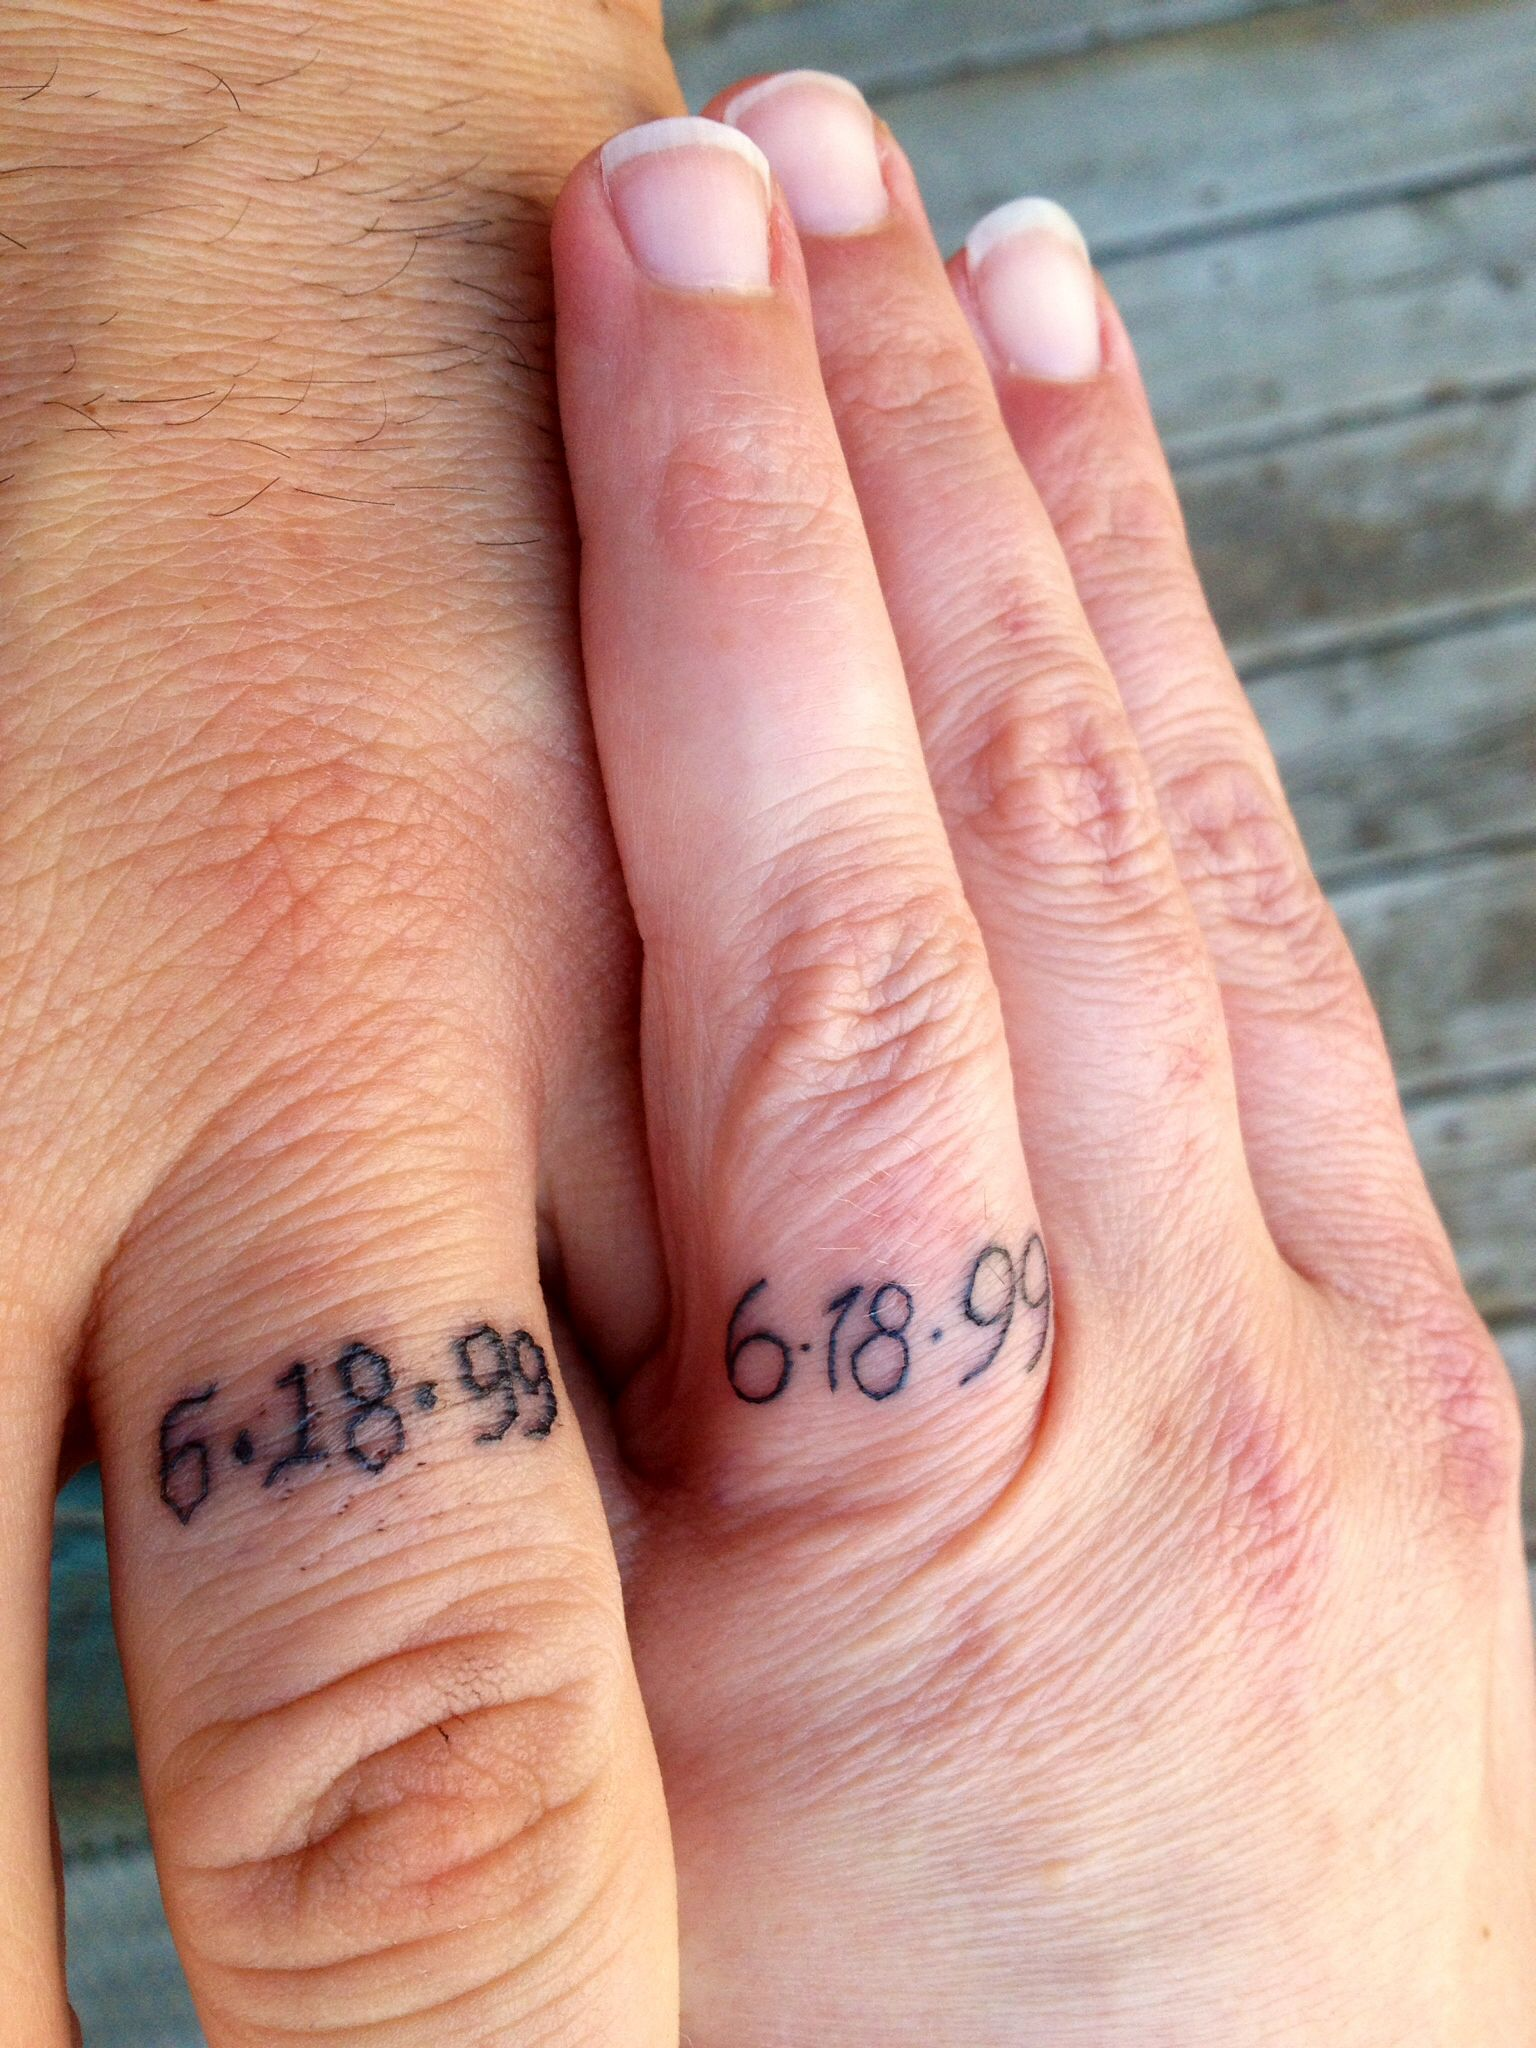 Finally got our anniversary wedding ring tattoos! | Tats | Pinterest ...